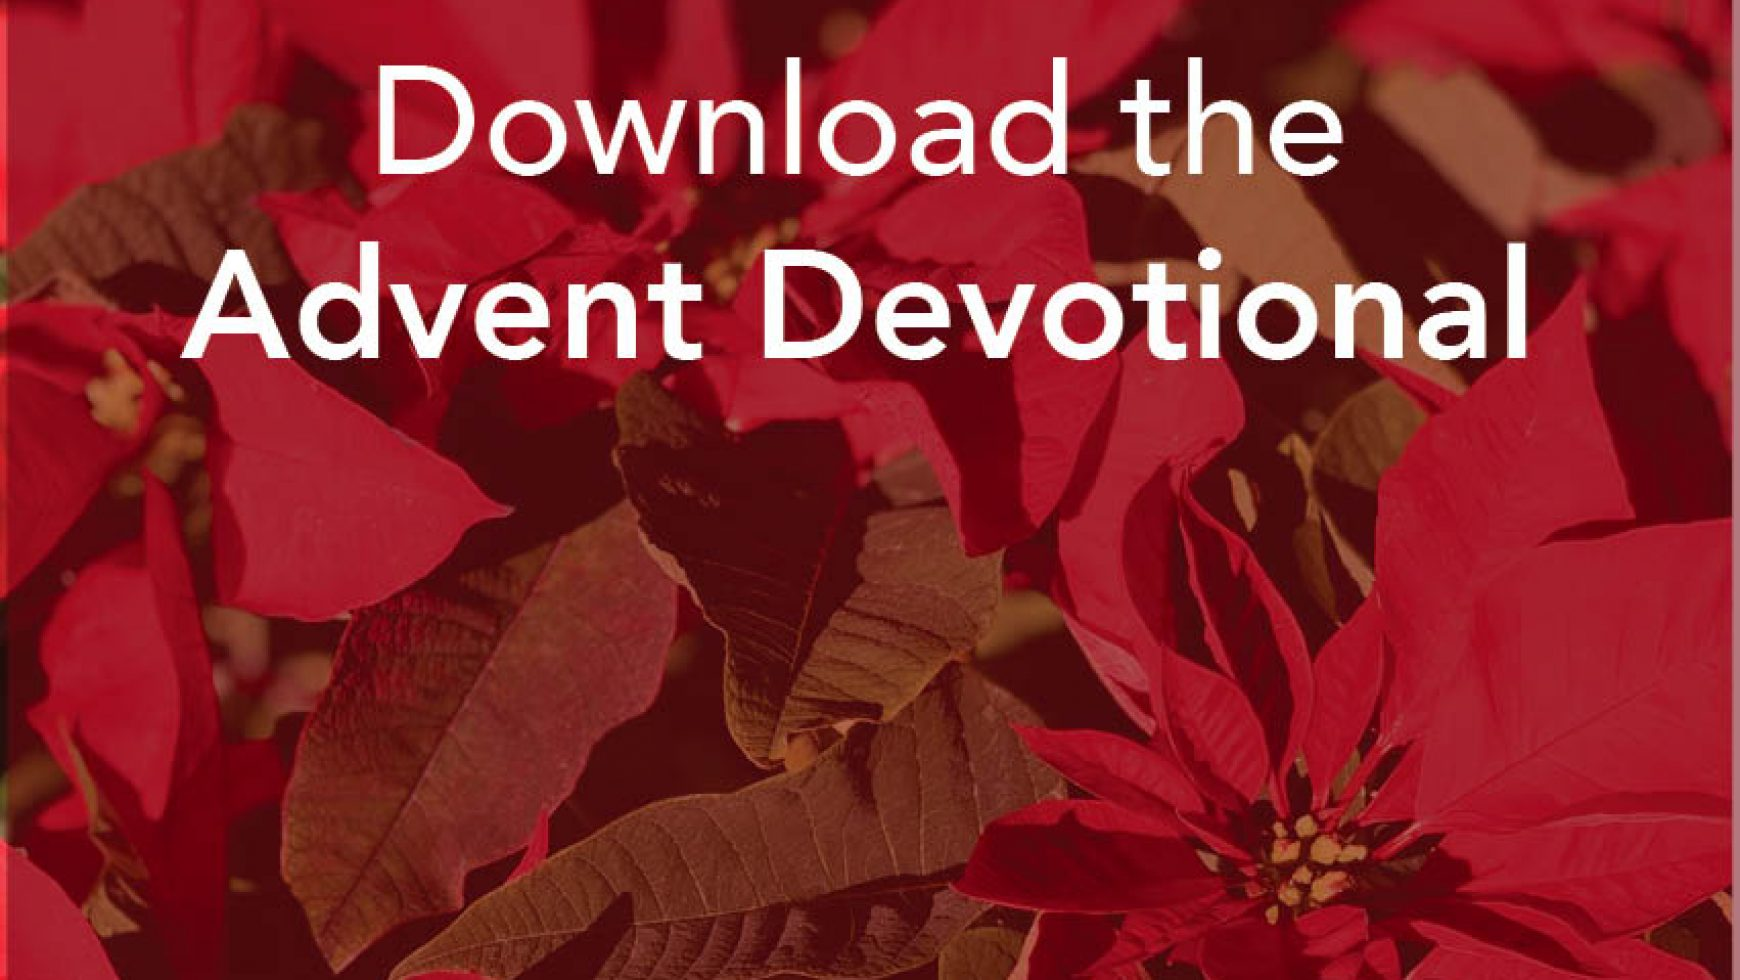 Prepare the Way: Advent Devotions from the People of Mountain View UMC